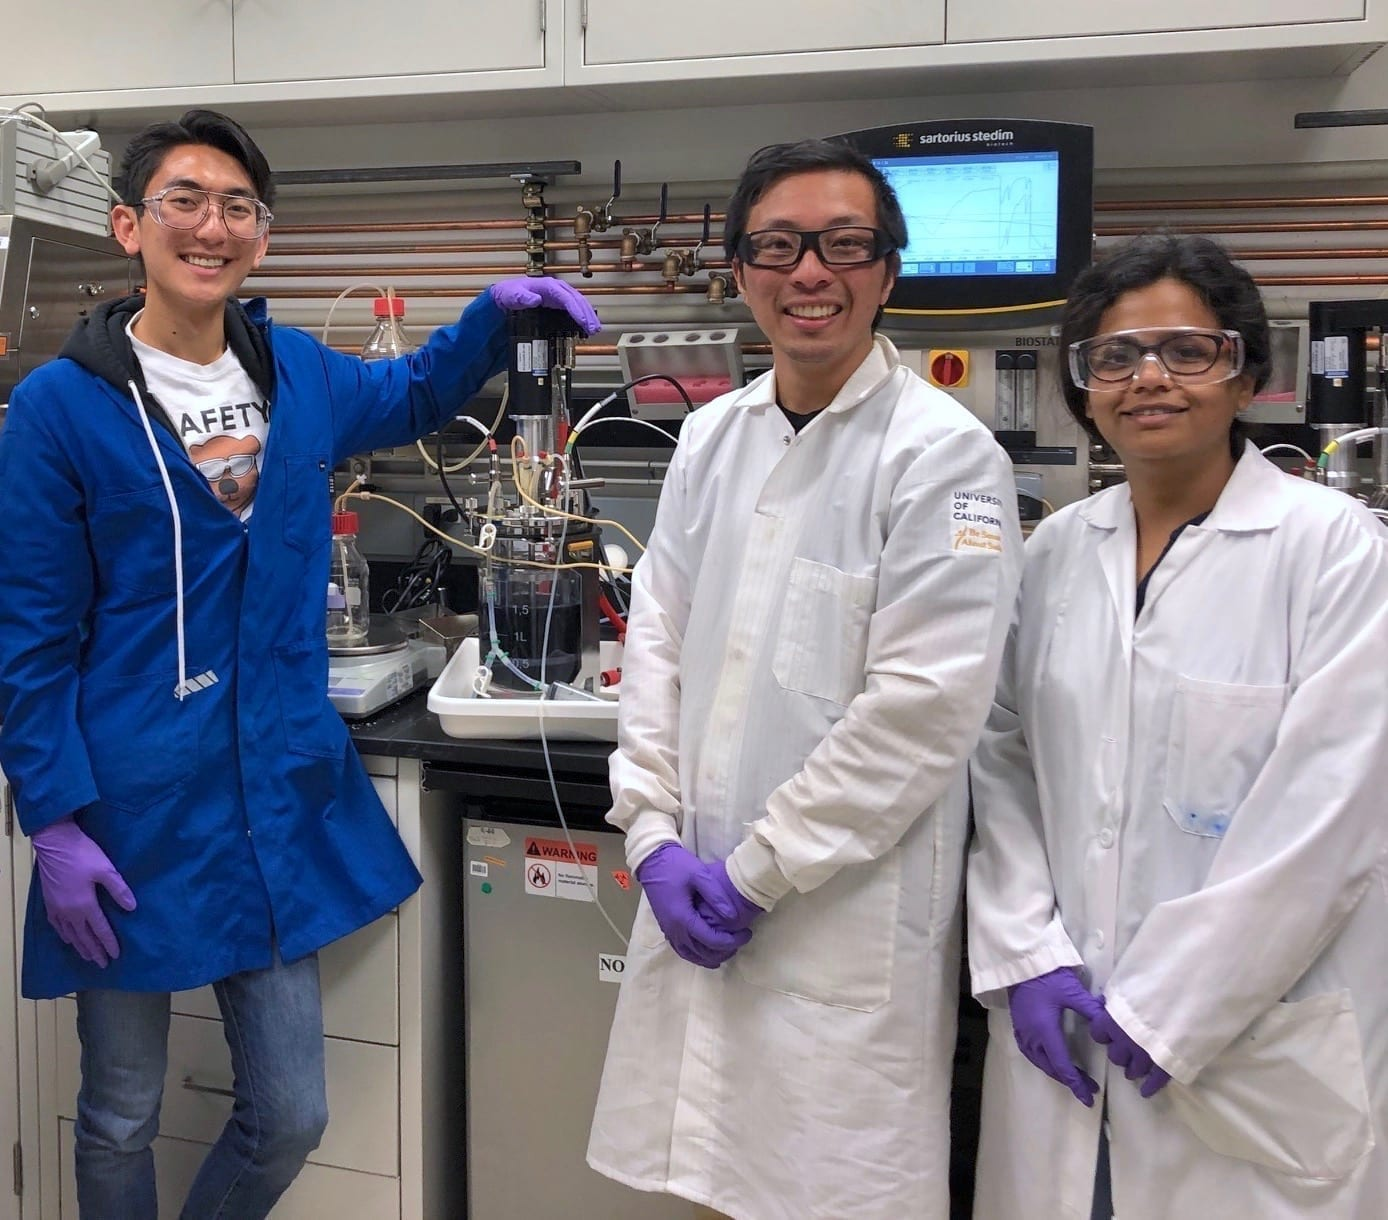 Study authors (from left to right) Andrew K. Lau, Thomas Eng, and Deepanwita Banerjee stand in front of a two-liter bioreactor containing P. putida cells that are producing indigoidine, which causes the strong dark blue color of the liquid. This photo was taken at JBEI in July 2019. (Credit: Berkeley Lab)